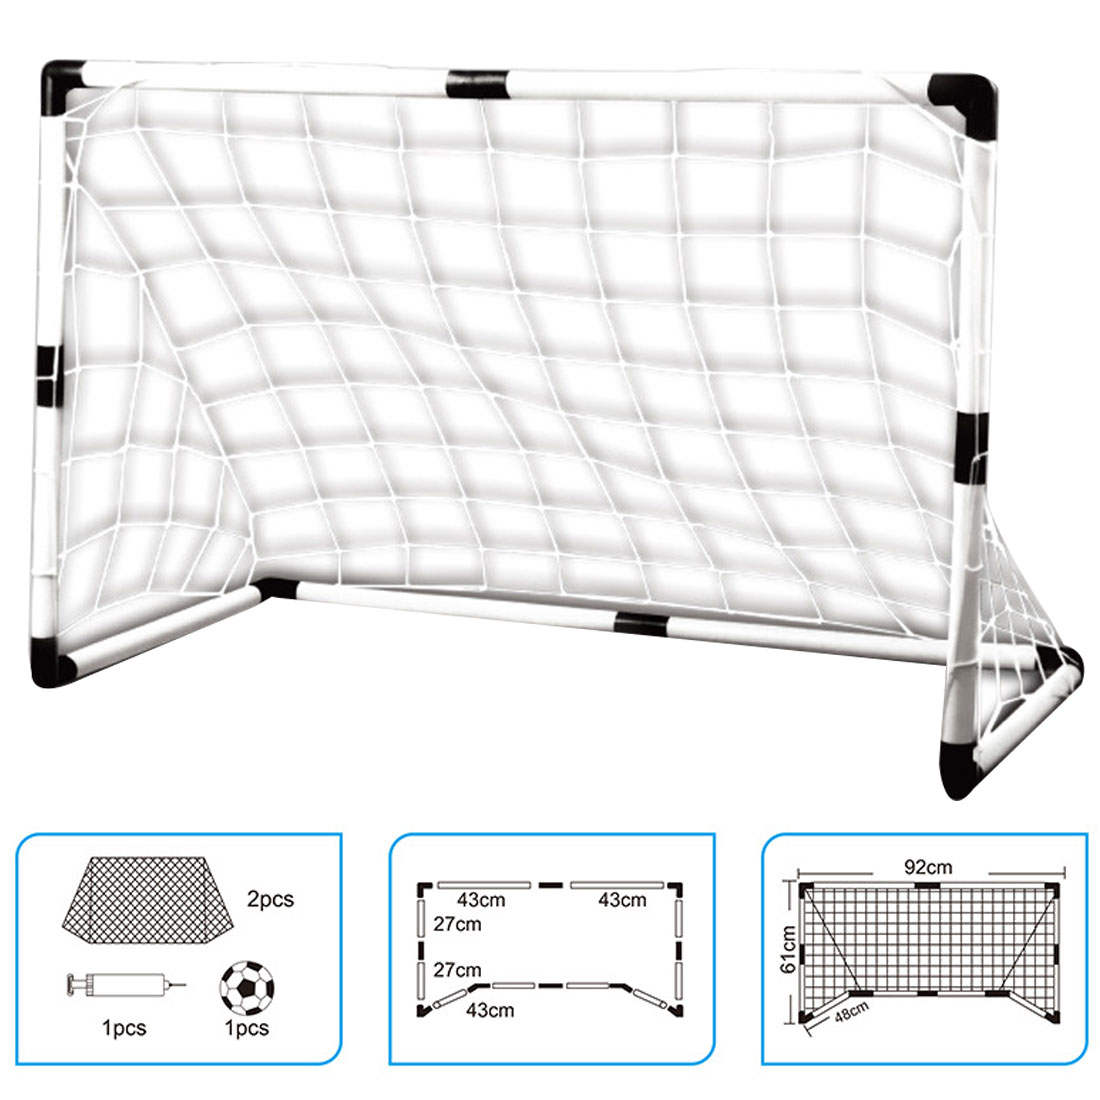 Hot 2 Sets Detachable DIY Children Sports Soccer Goals Practice Scrimmage Game Football Gate DIY White With Soccer Ball And Pump